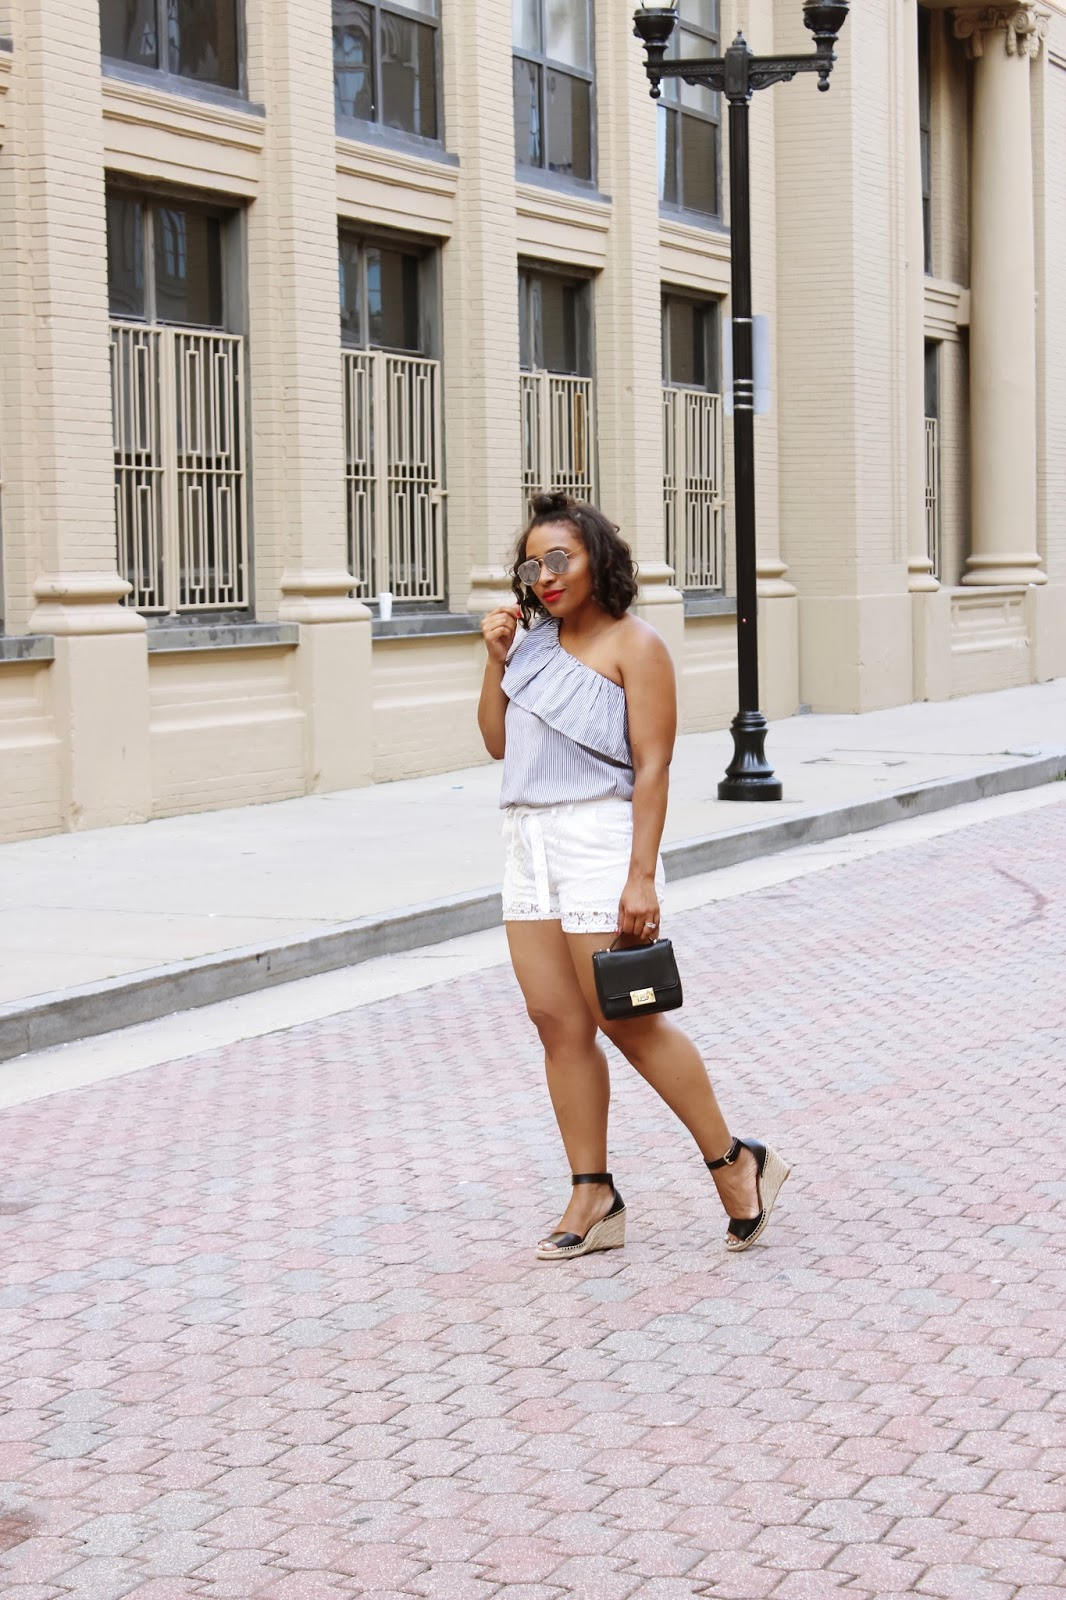 White Lace Shorts, one shoulder trend, summer outfits, white looks, atlantic city board walk, summer outfit ideas, summer shorts, one shoulder top, lace shorts, walking in streets